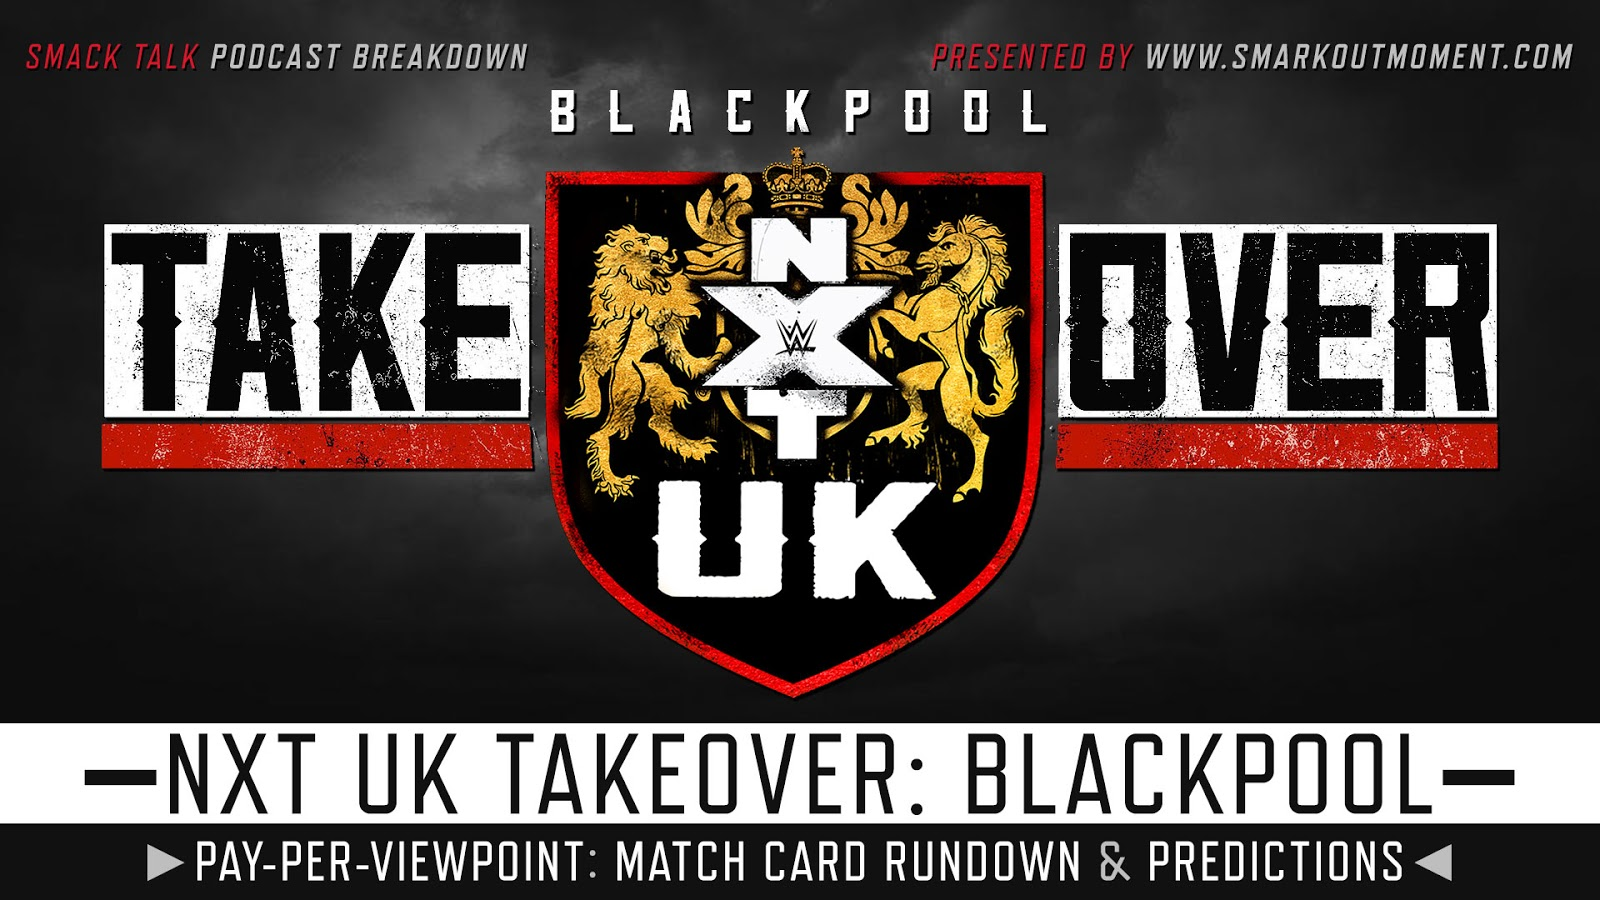 WWE NXT UK TakeOver: Blackpool II spoilers podcast